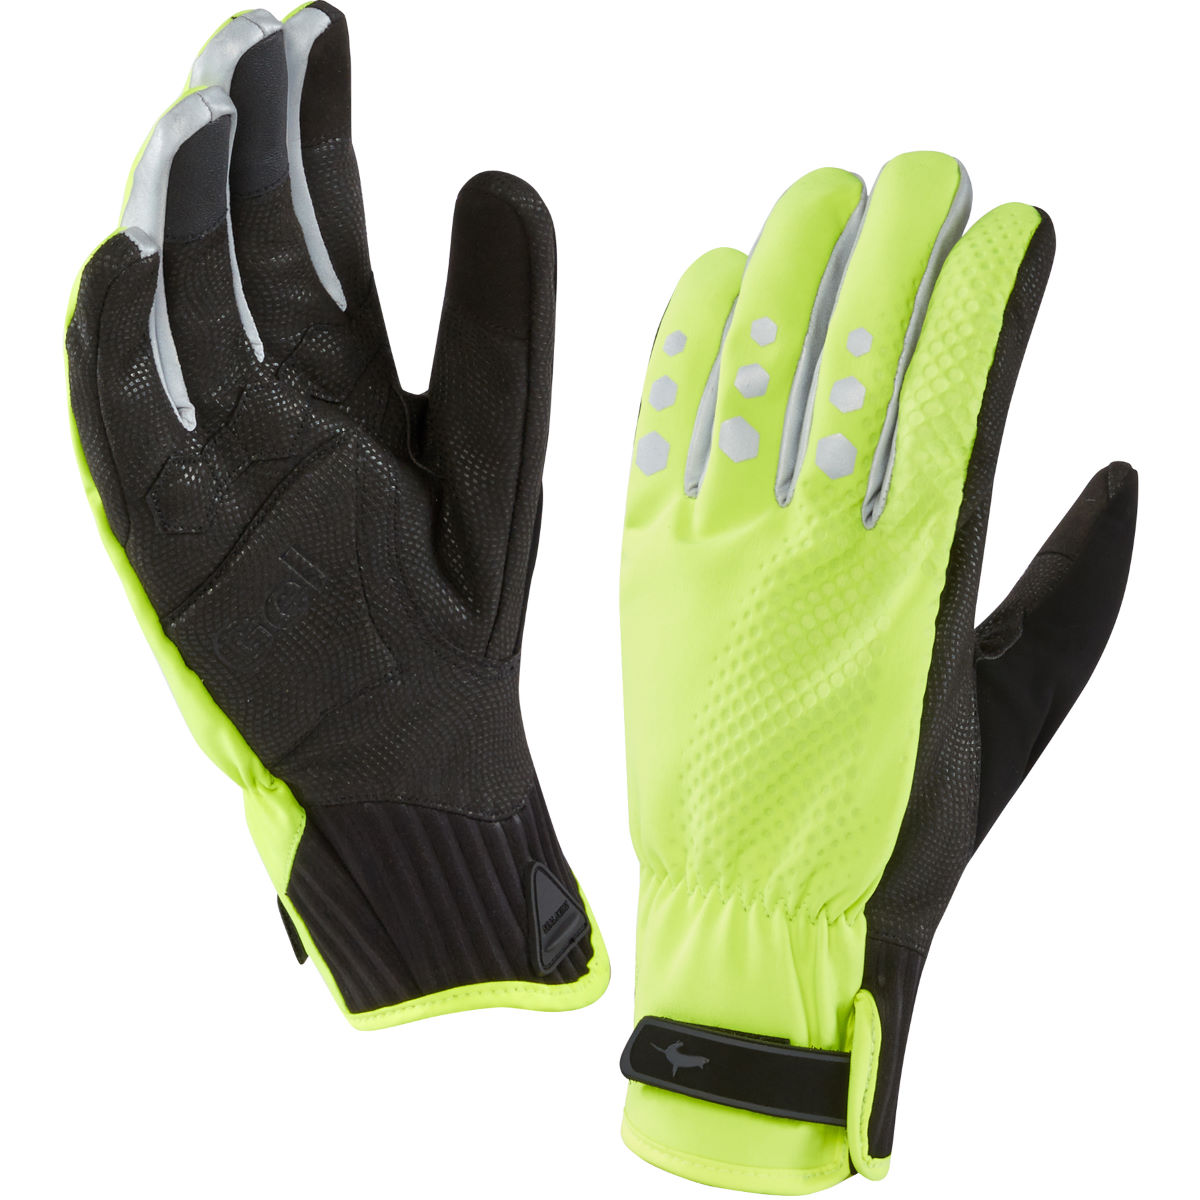 Gants vélo SealSkinz All Weather XP - Small Hi Vis Yellow/Black